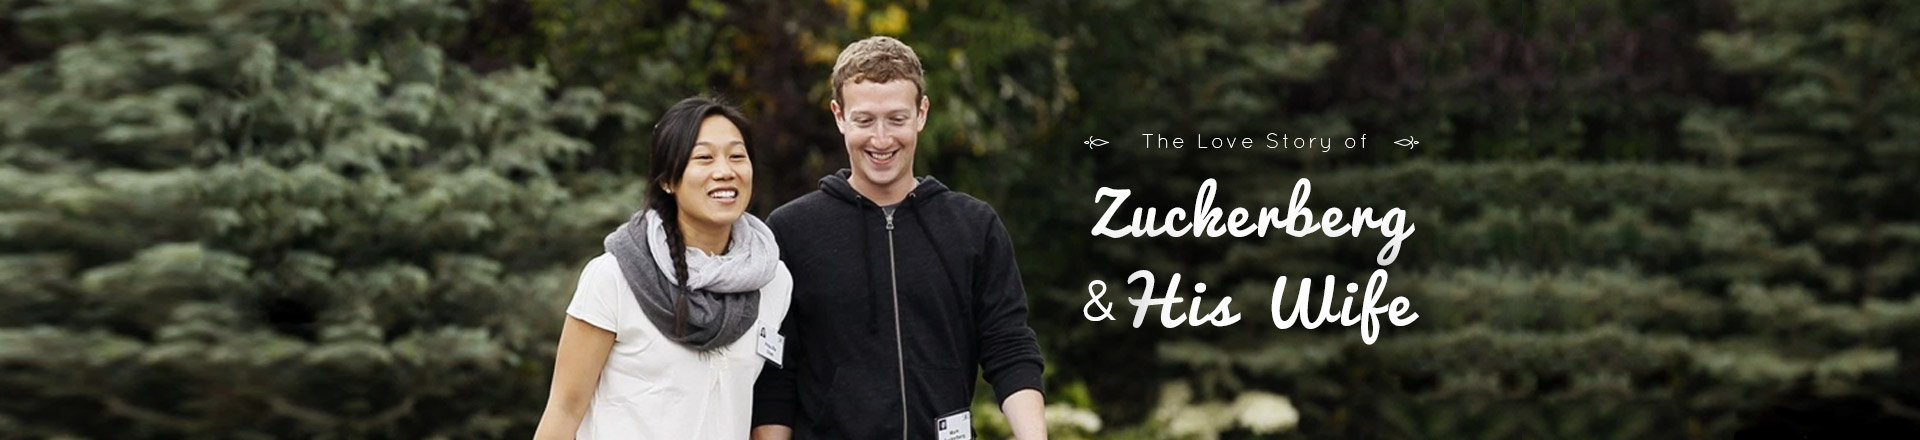 The Love Story of Mark Zuckerberg and His Wife Priscilla Chan